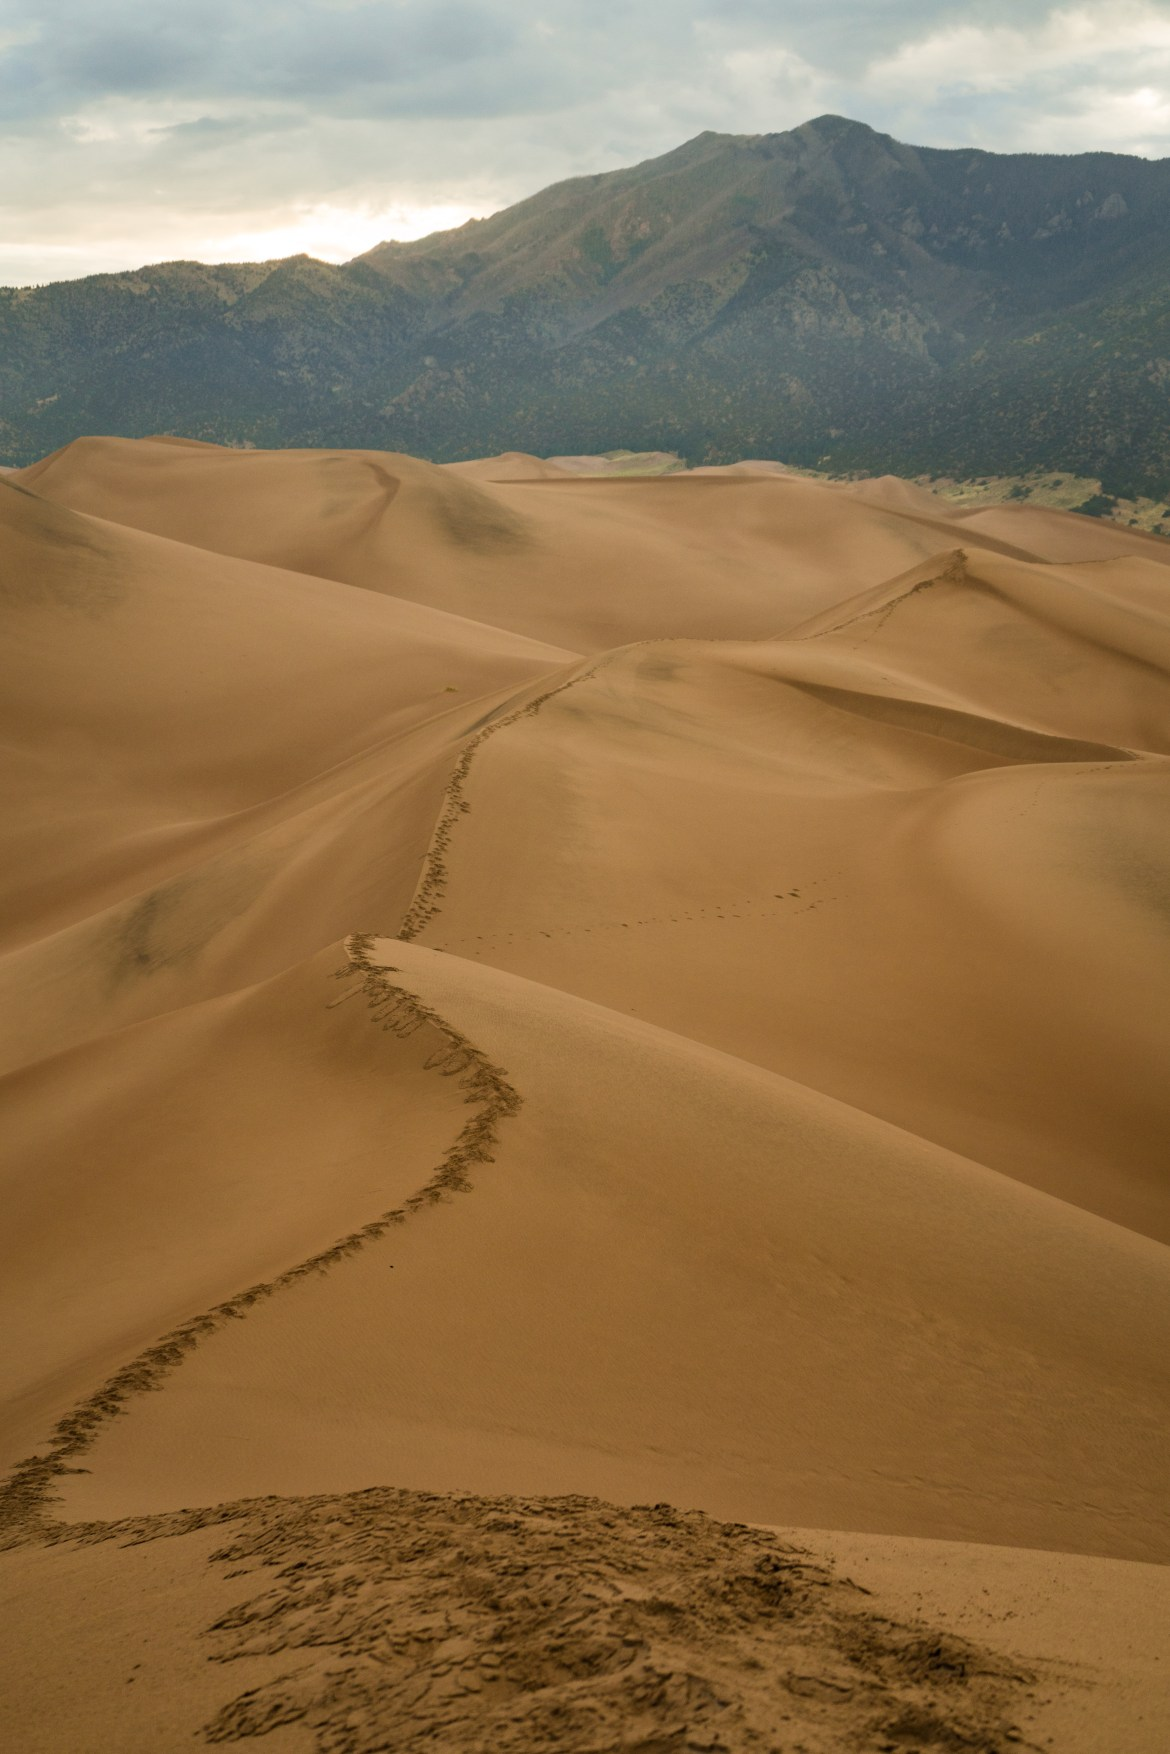 Hiking The Great Sand Dunes National Park, Colorado